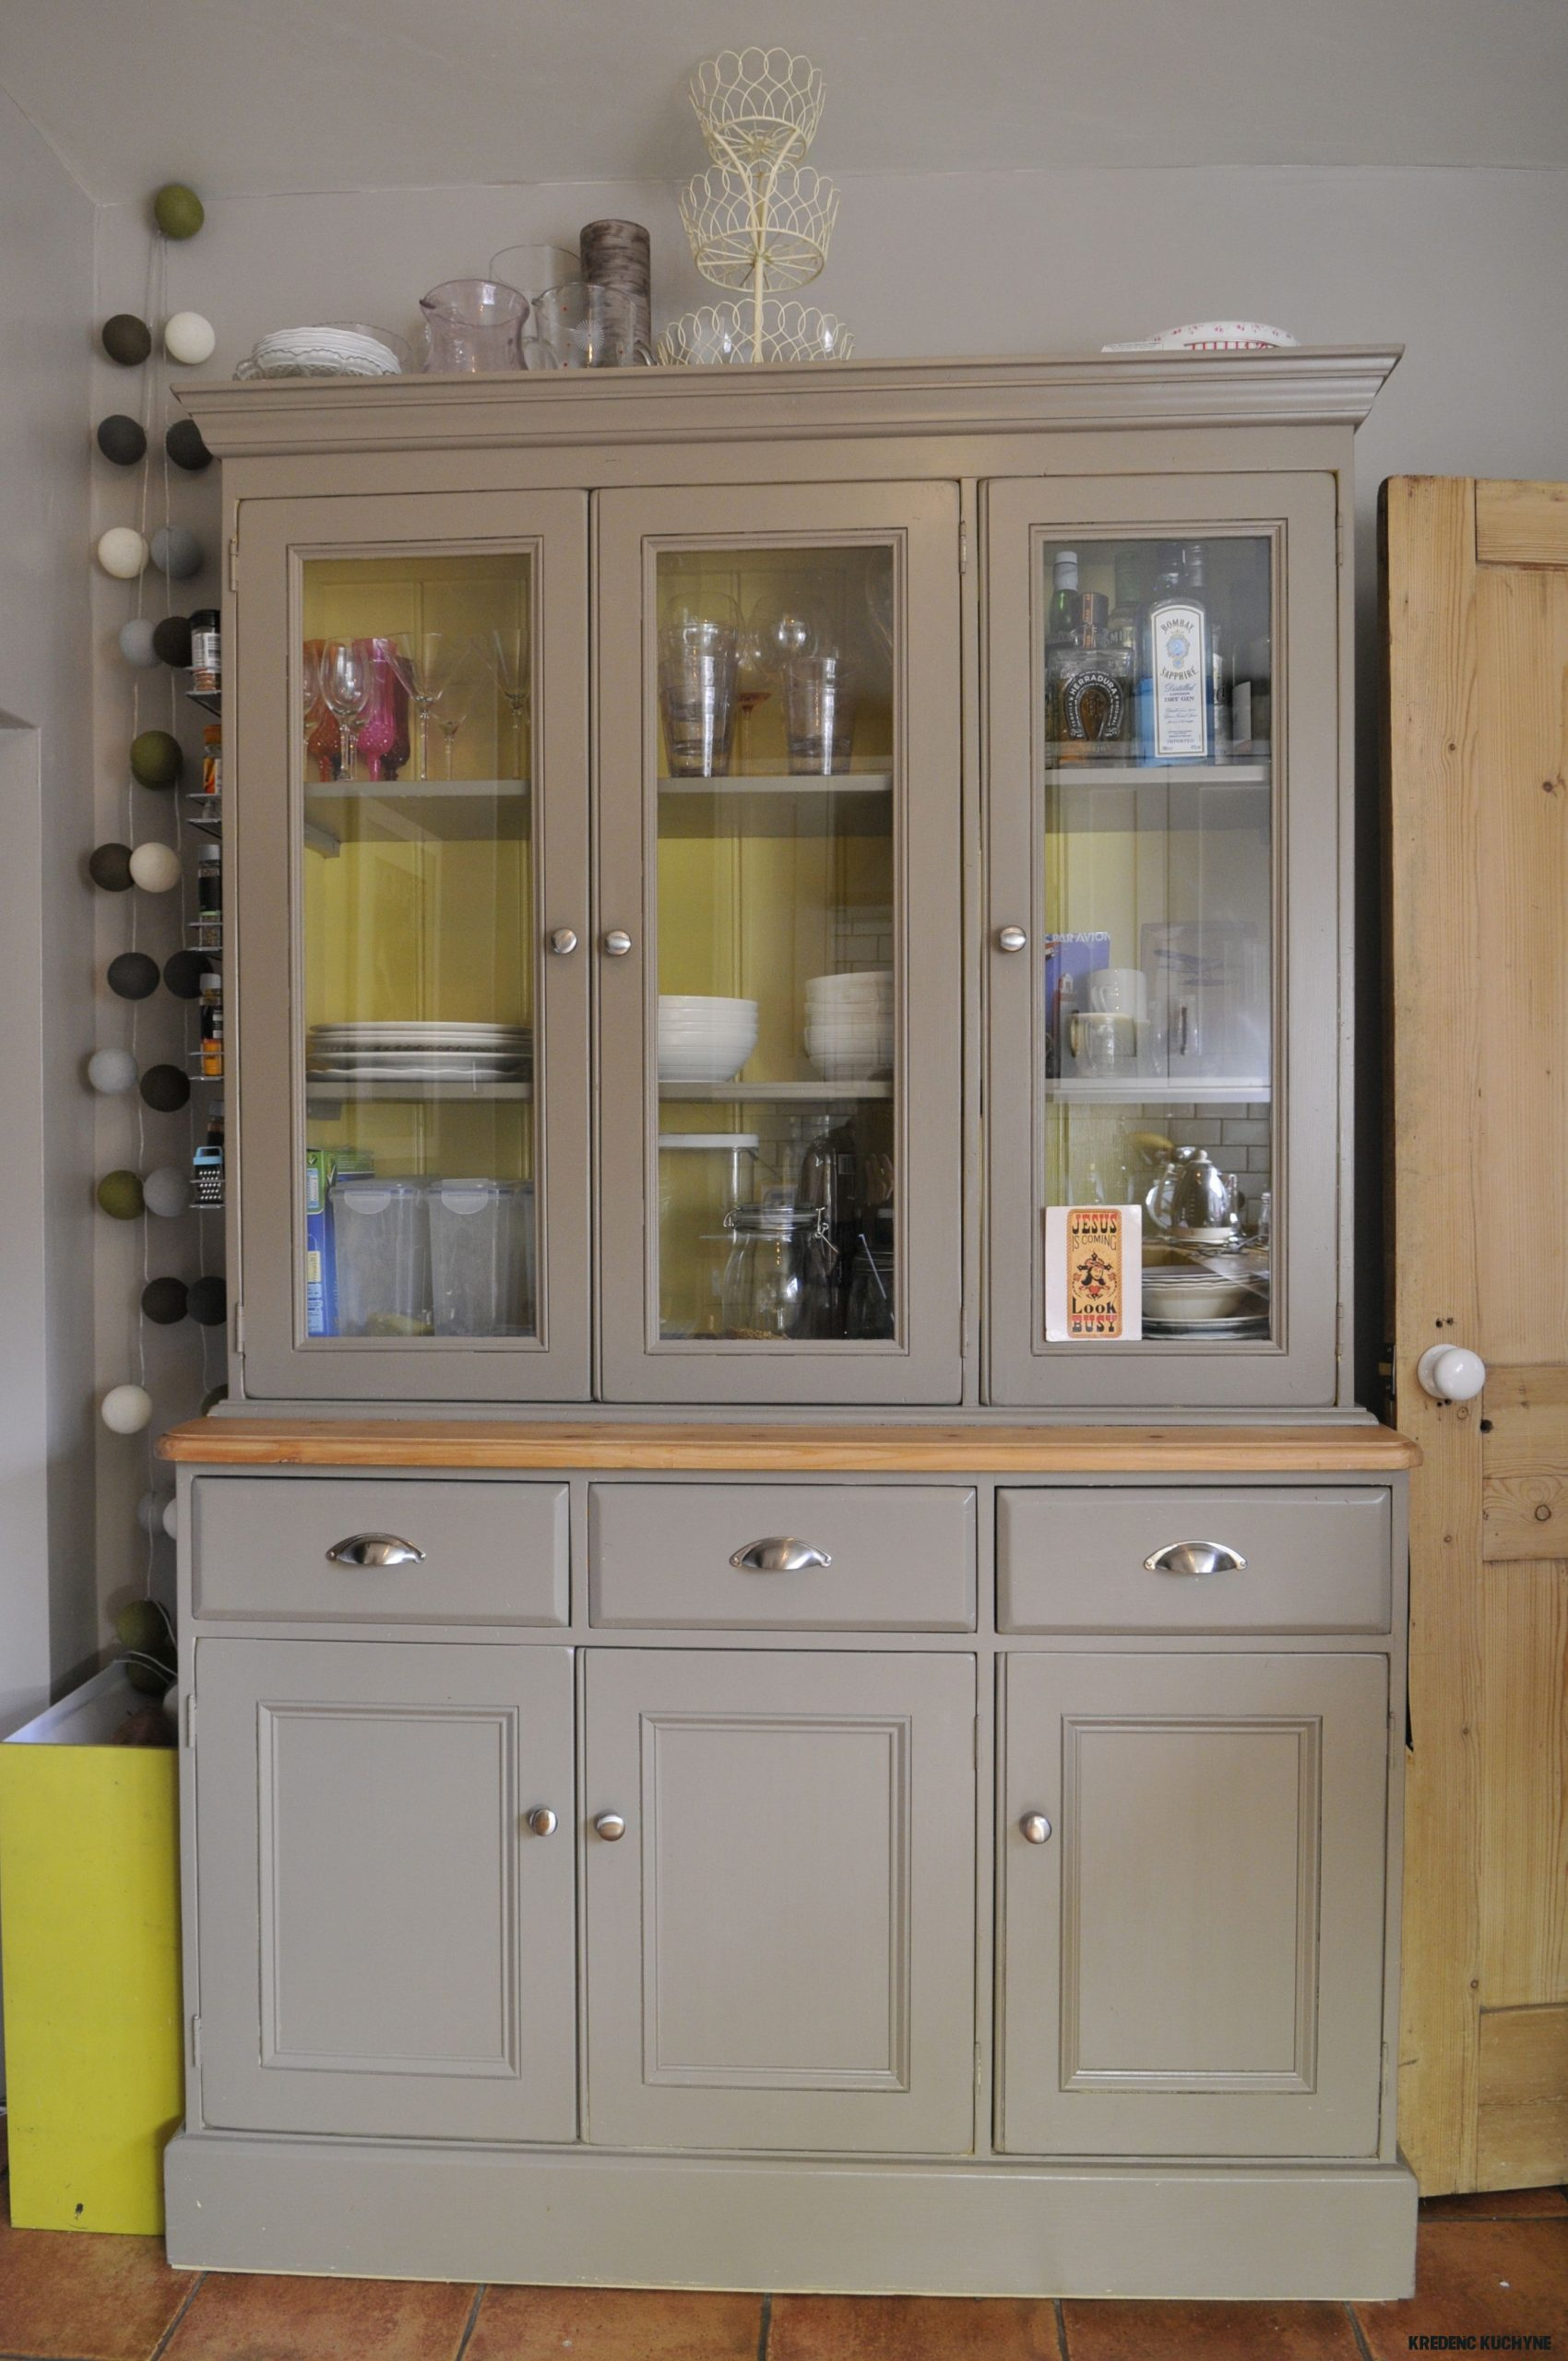 Pin on Shabby Chic Kitchens